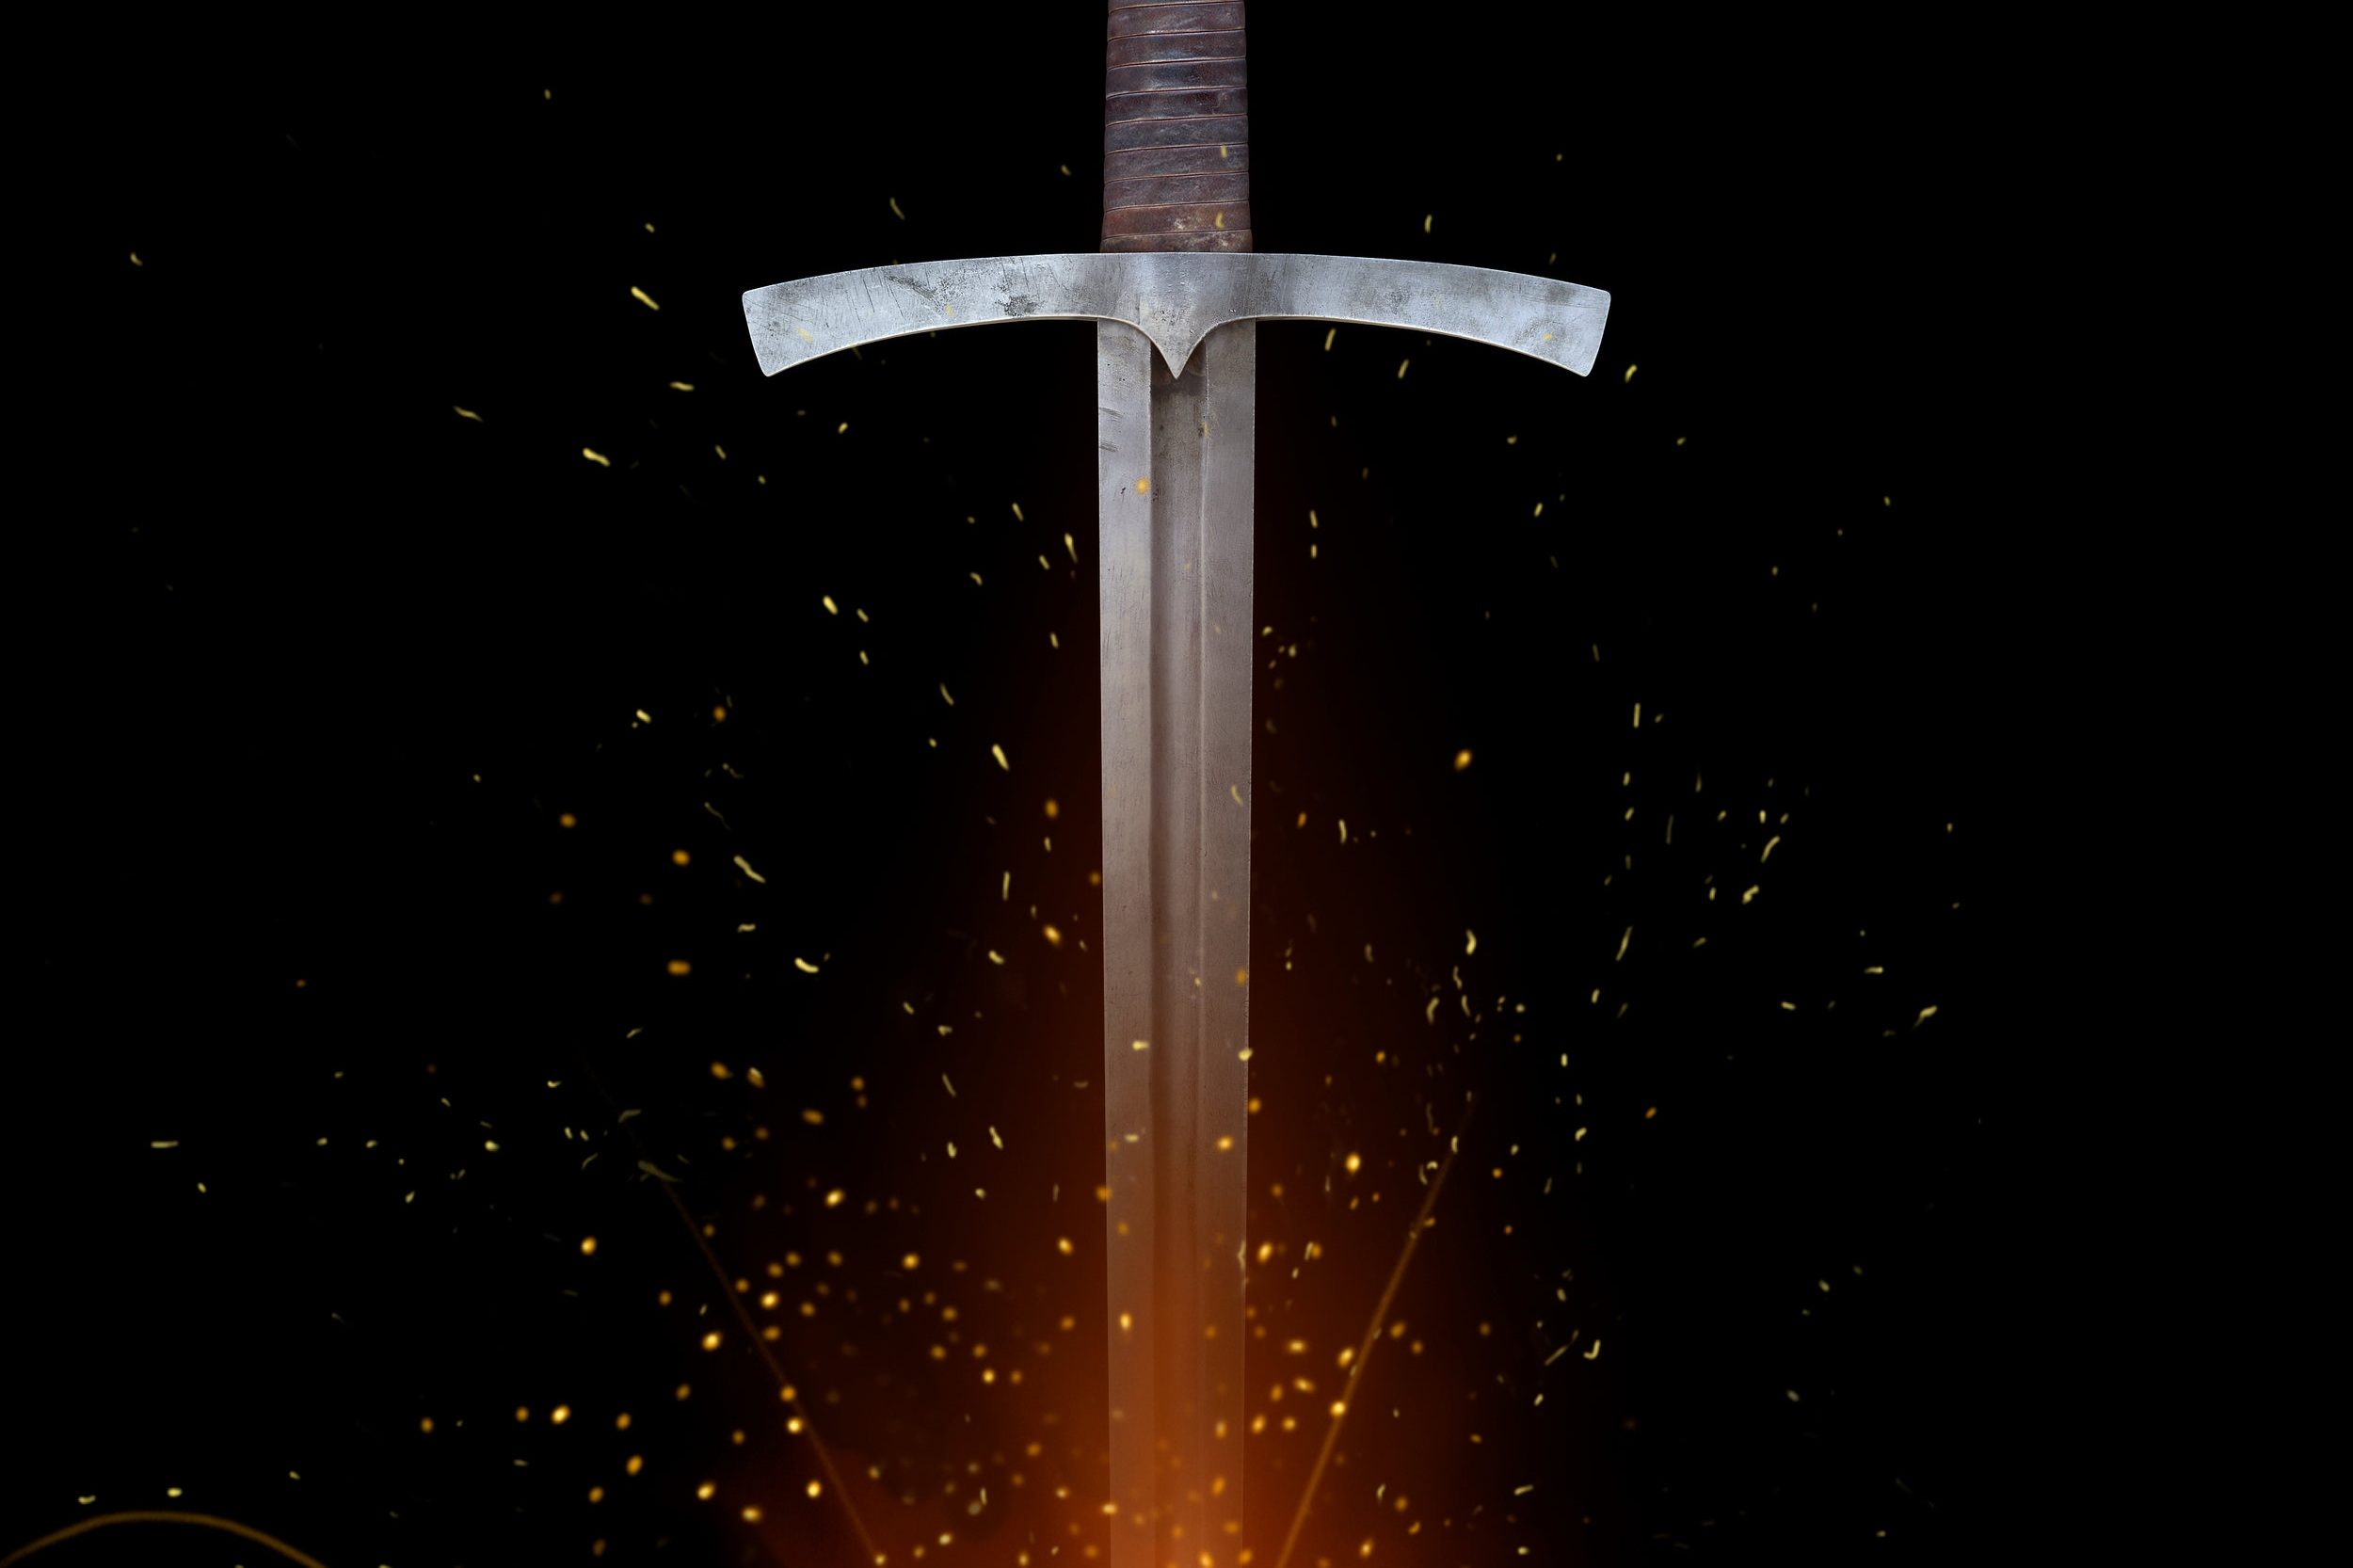 Forging Excalibur - This book helps to empower Men to find purpose and meaning in life, get in touch with their core values and operate at optimum levels in life.